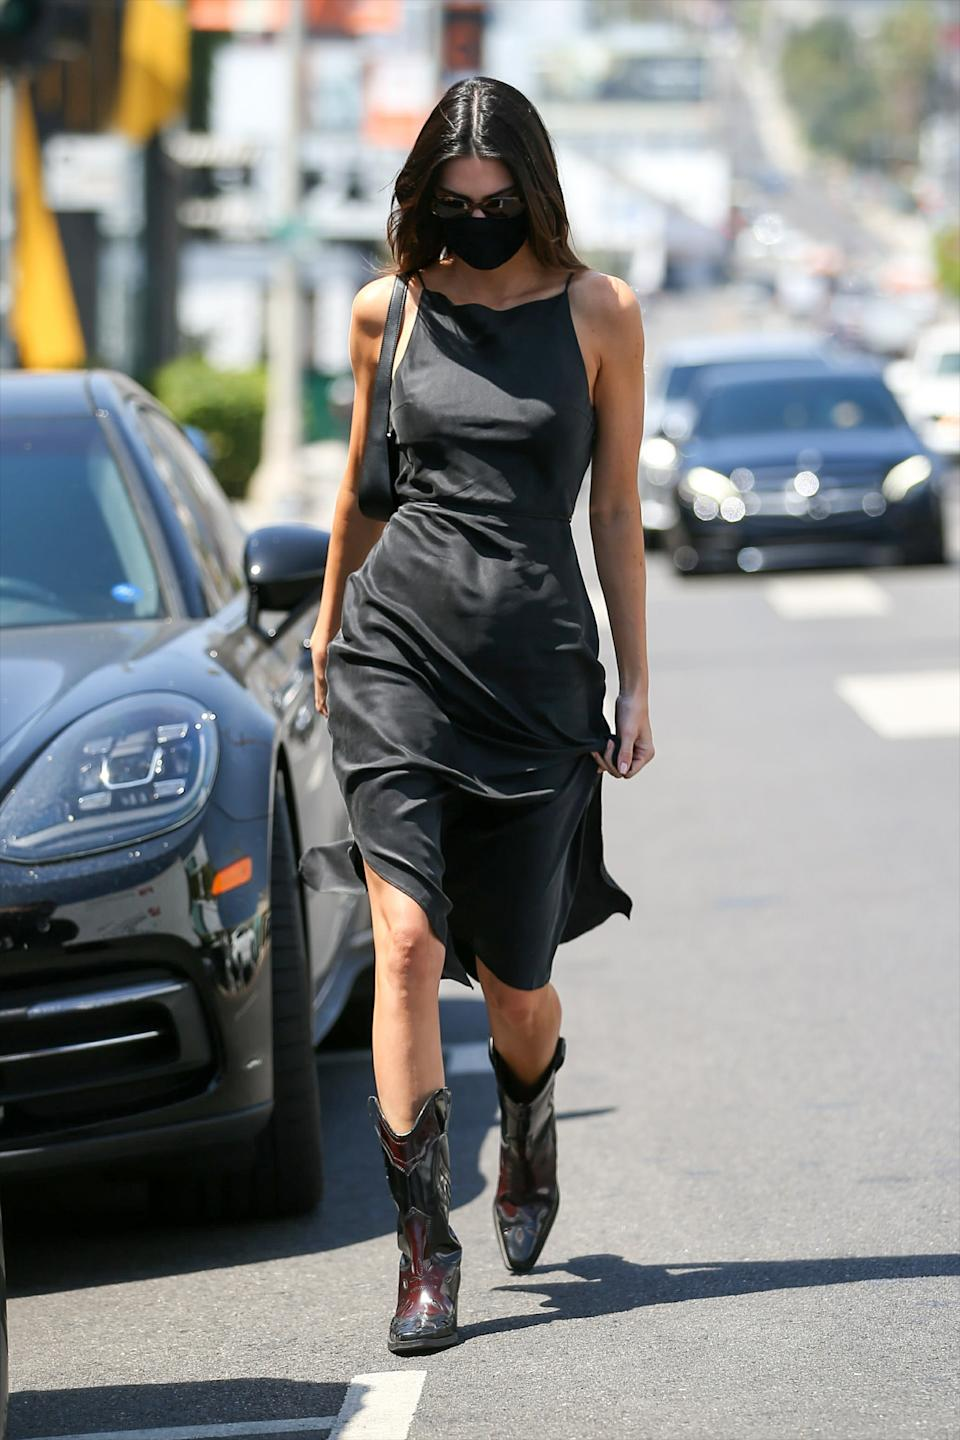 -Los Angeles, CA - 20210527 - Kendall Jenner covers up with a protective face mask while getting into her G-Wagon.   -PICTURED: Kendall Jenner